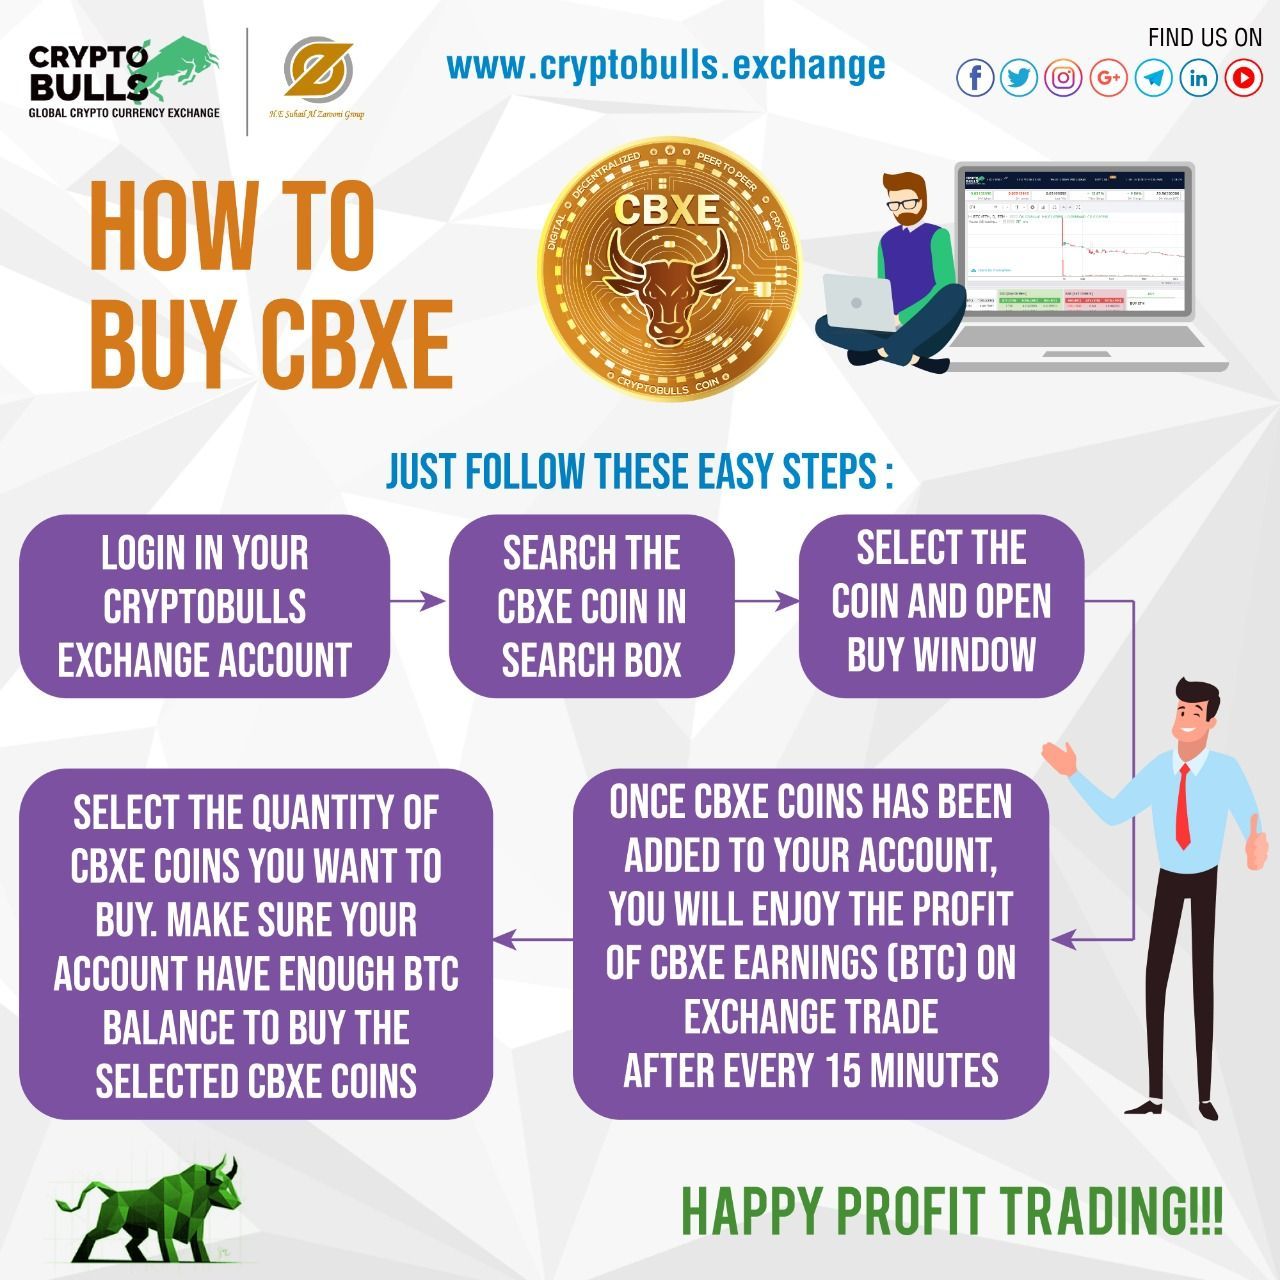 what cryptocurrency to buy next